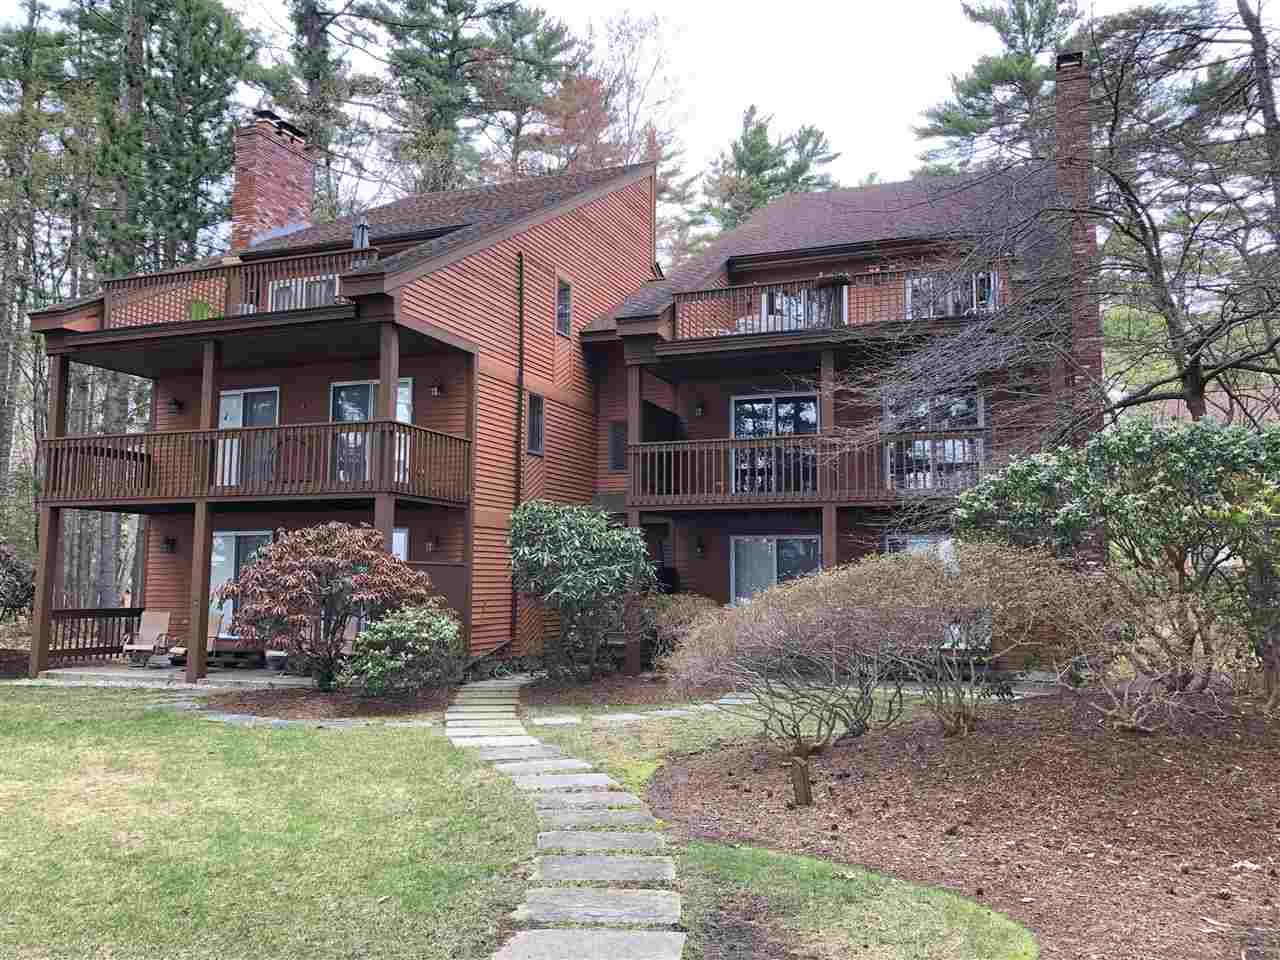 VILLAGE OF MELVIN VILLAGE IN TOWN OF TUFTONBORO NH Condo for sale $325,000